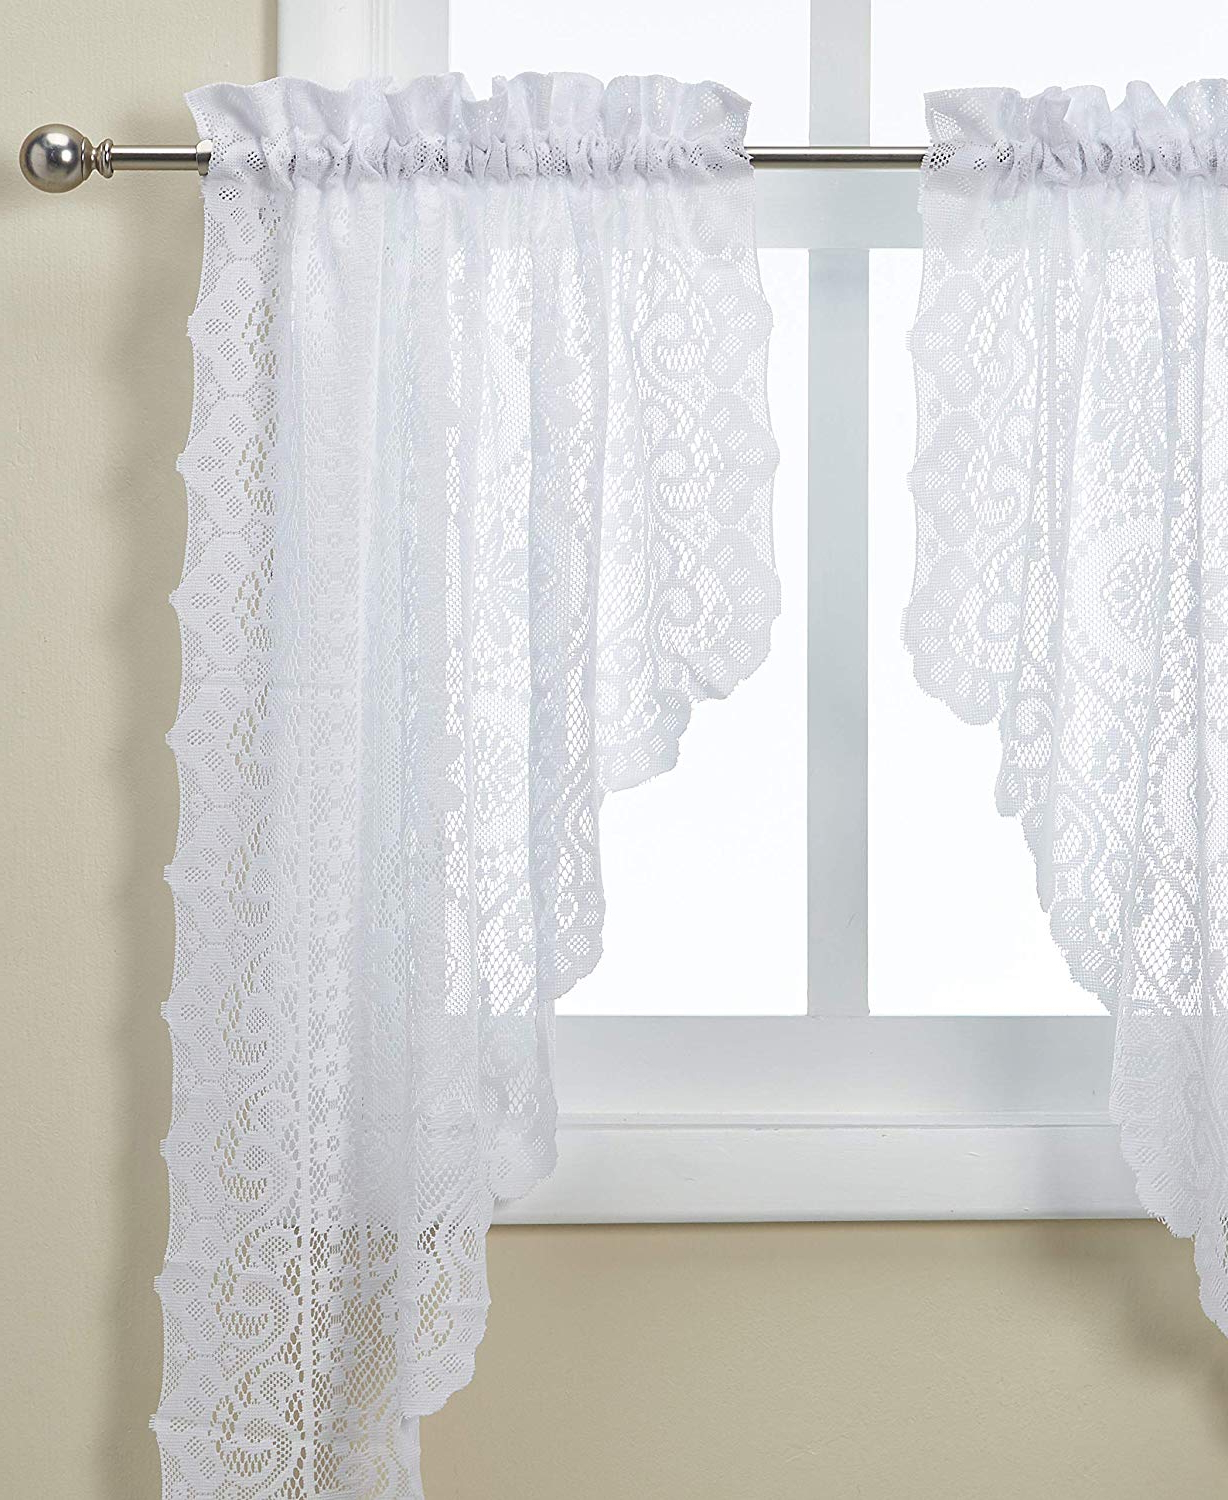 Most Recent Luxurious Old World Style Lace Window Curtain Panels With Regard To Lorraine Home Fashions Hopewell Lace Window Swags, 58 Inch38 Inch,  White, Set Of 2 (Gallery 16 of 20)